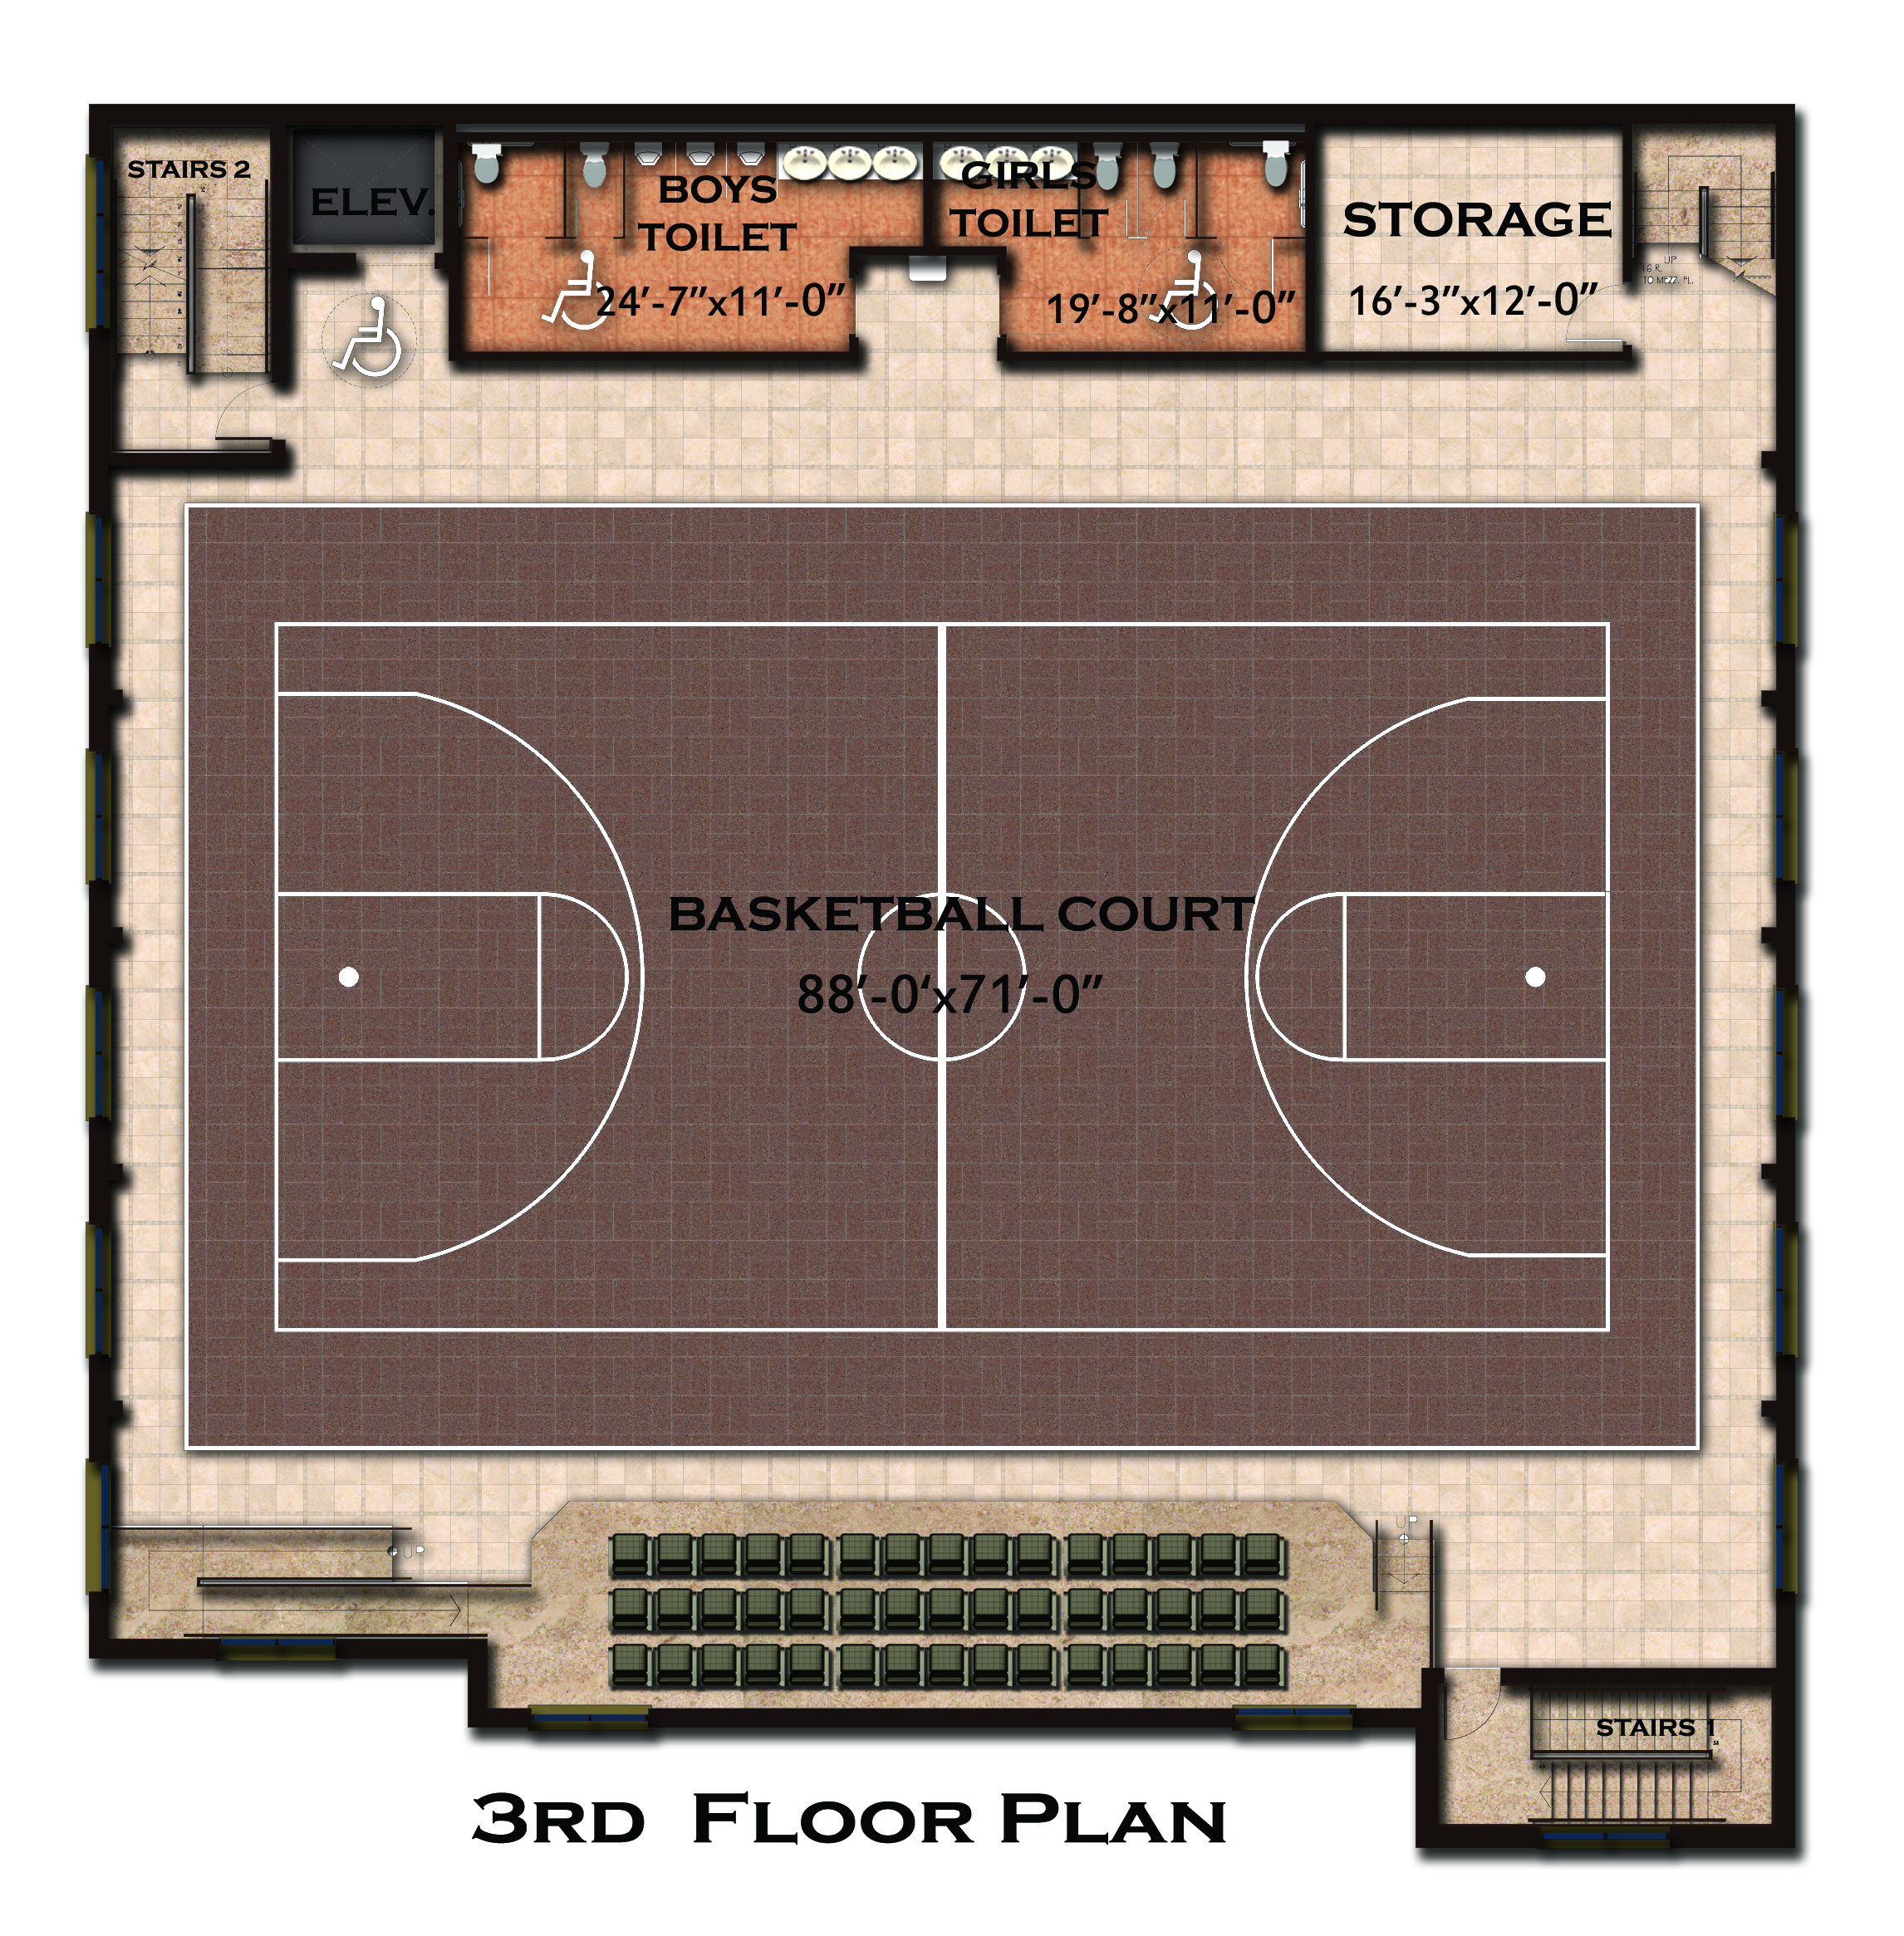 Home floor plans with indoor basketball court for Home plans with indoor sports court